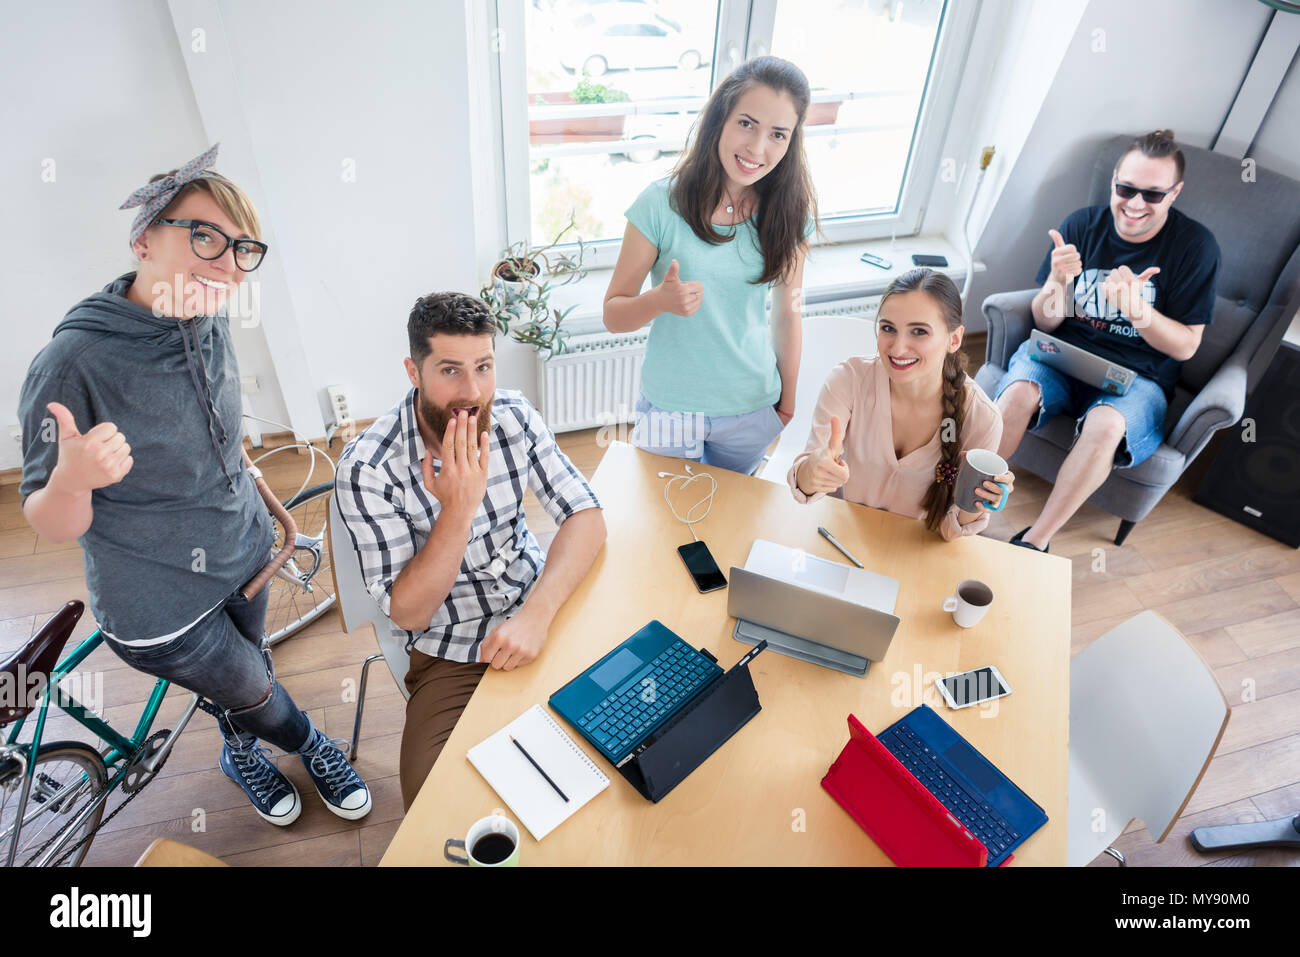 Young cheerful people showing thumbs up for co-working - Stock Image